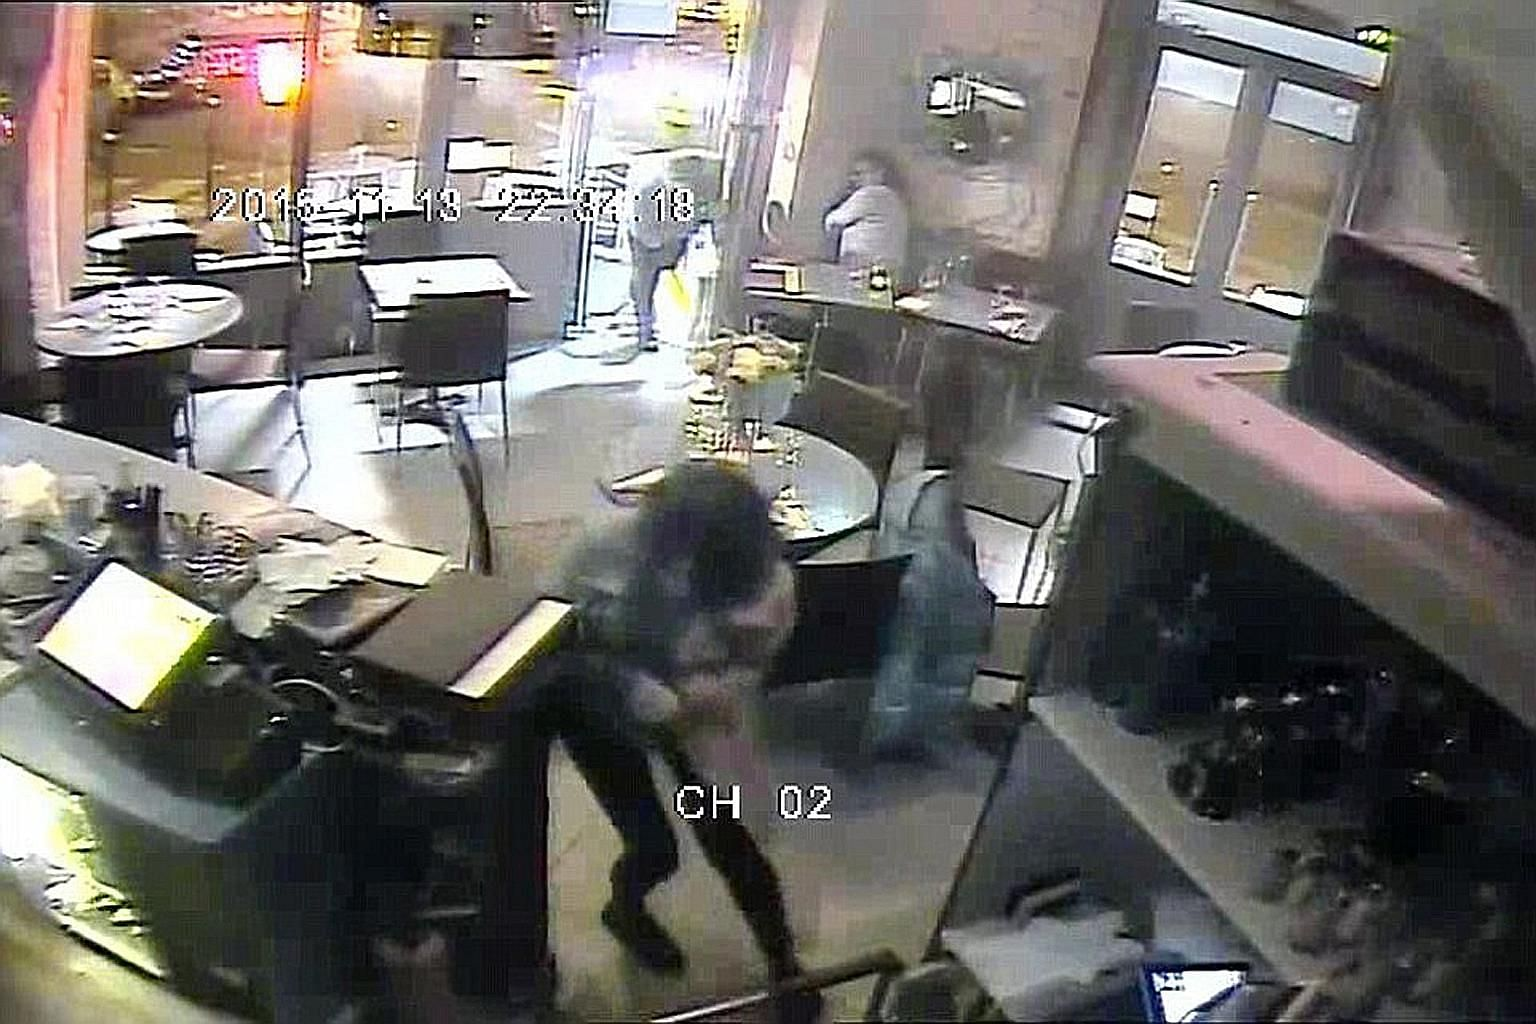 An image from the video released by the Daily Mail that shows people fleeing as bullets fly. The paper is alleged to have paid €50,000 for the footage, captured by CCTV cameras at Paris' Casa Nostra pizzeria.